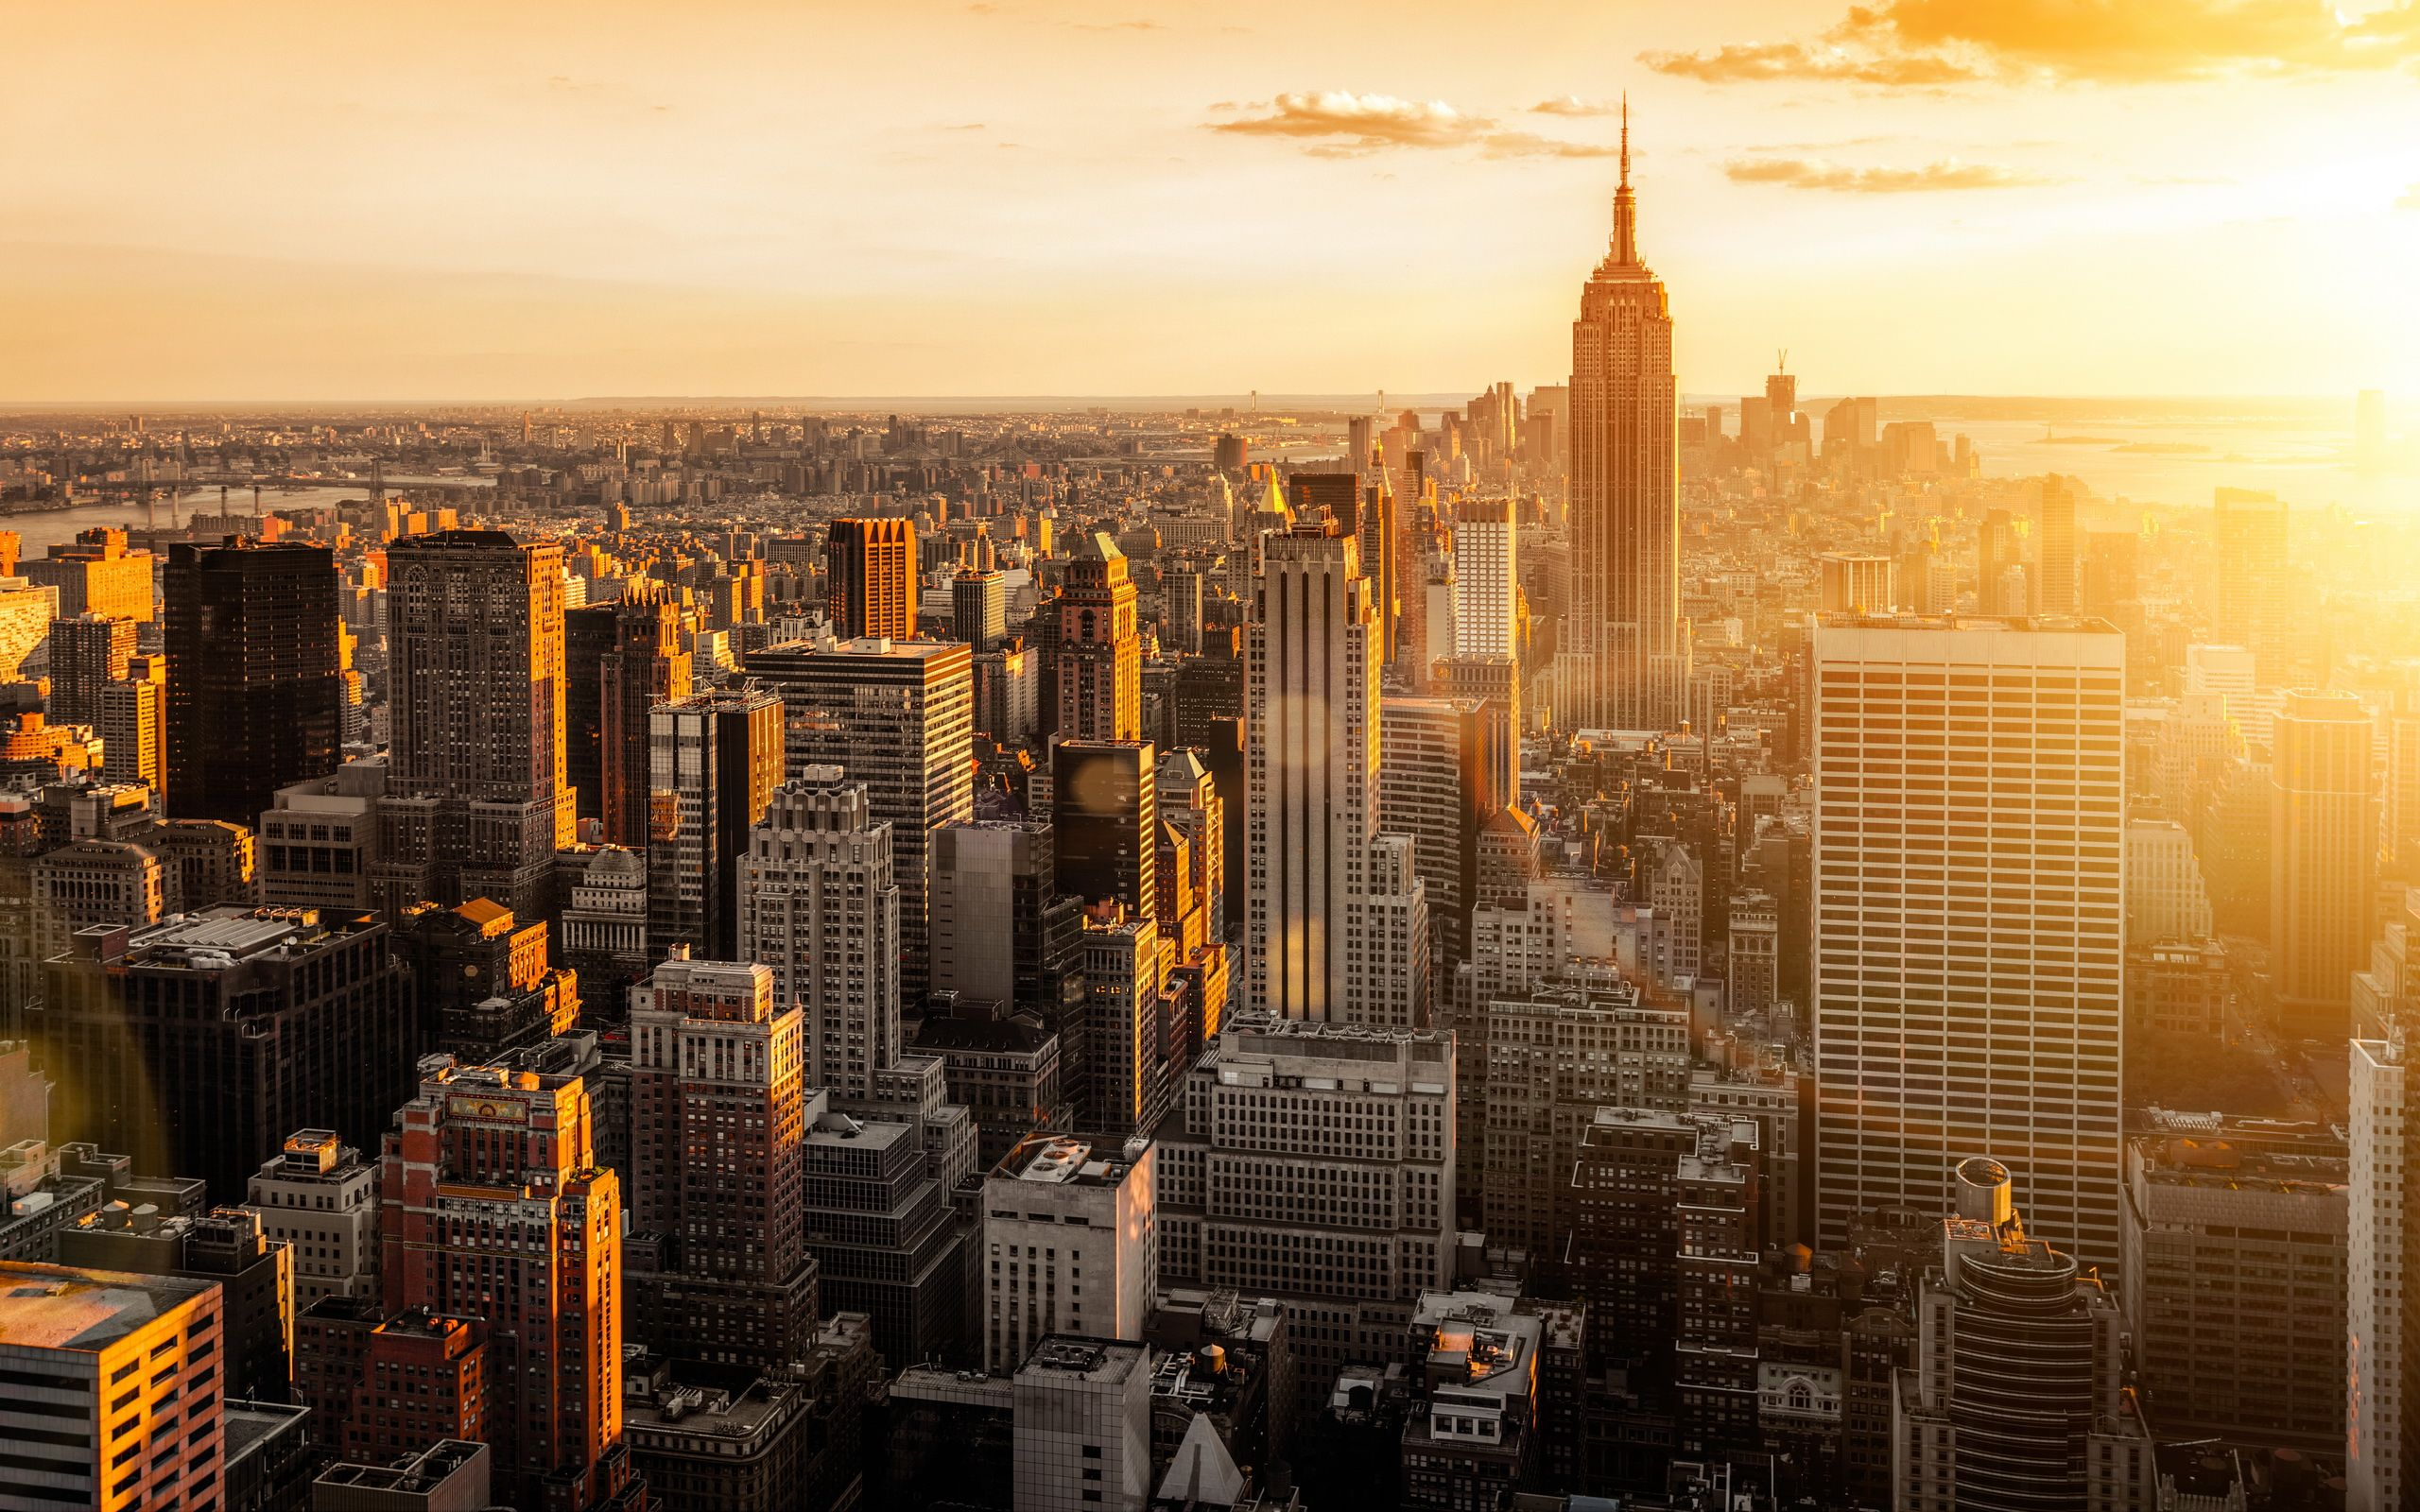 New York City Skyline Sunset Wallpaper Reiseziele